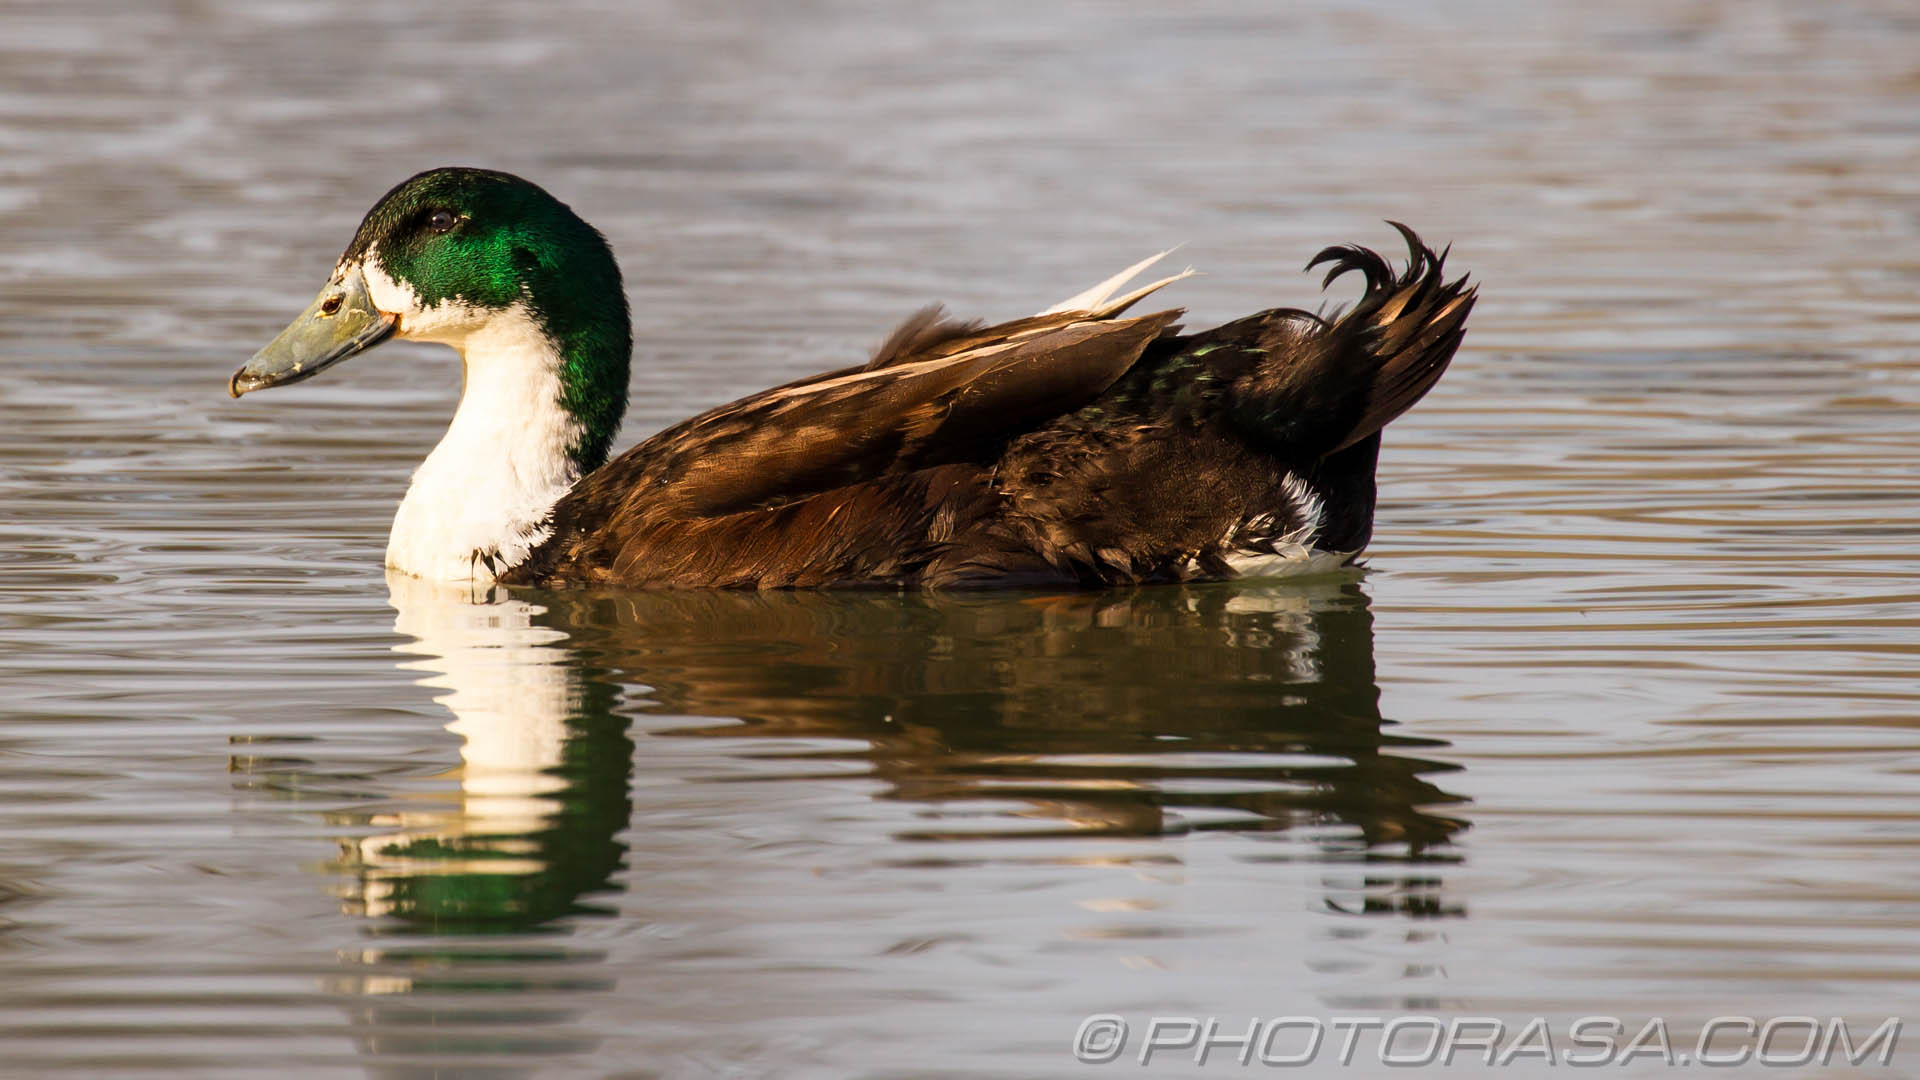 https://photorasa.com/manky-mallards/green-headed-mallard-gadwall/